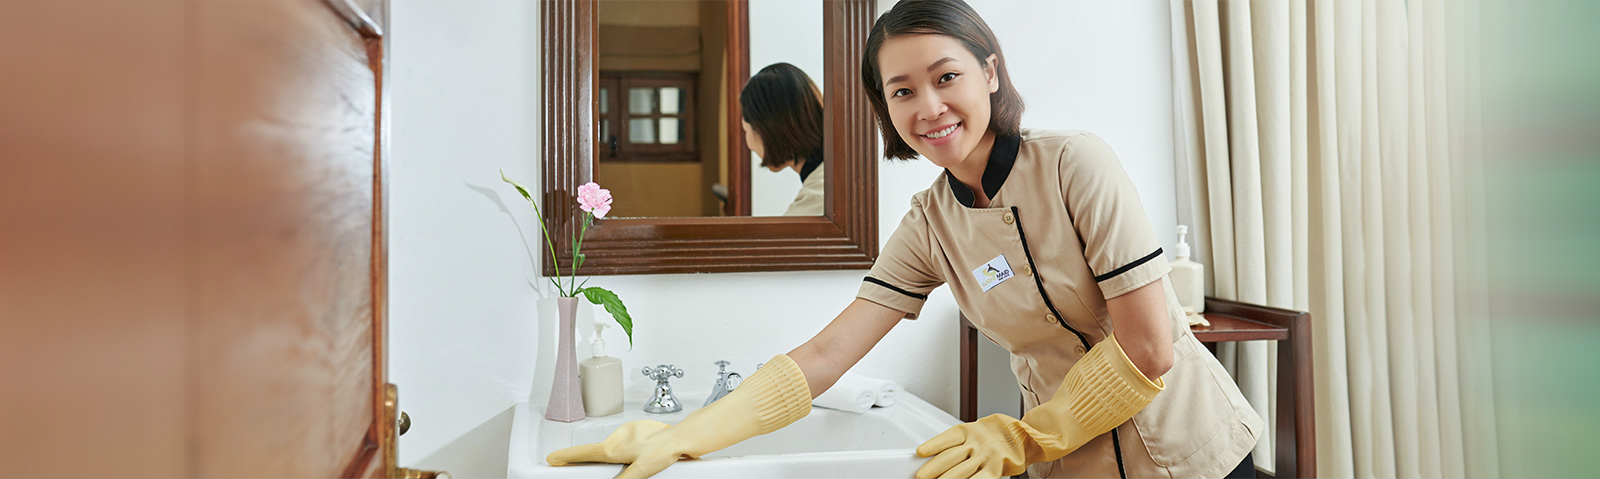 cleaning companies in qatar